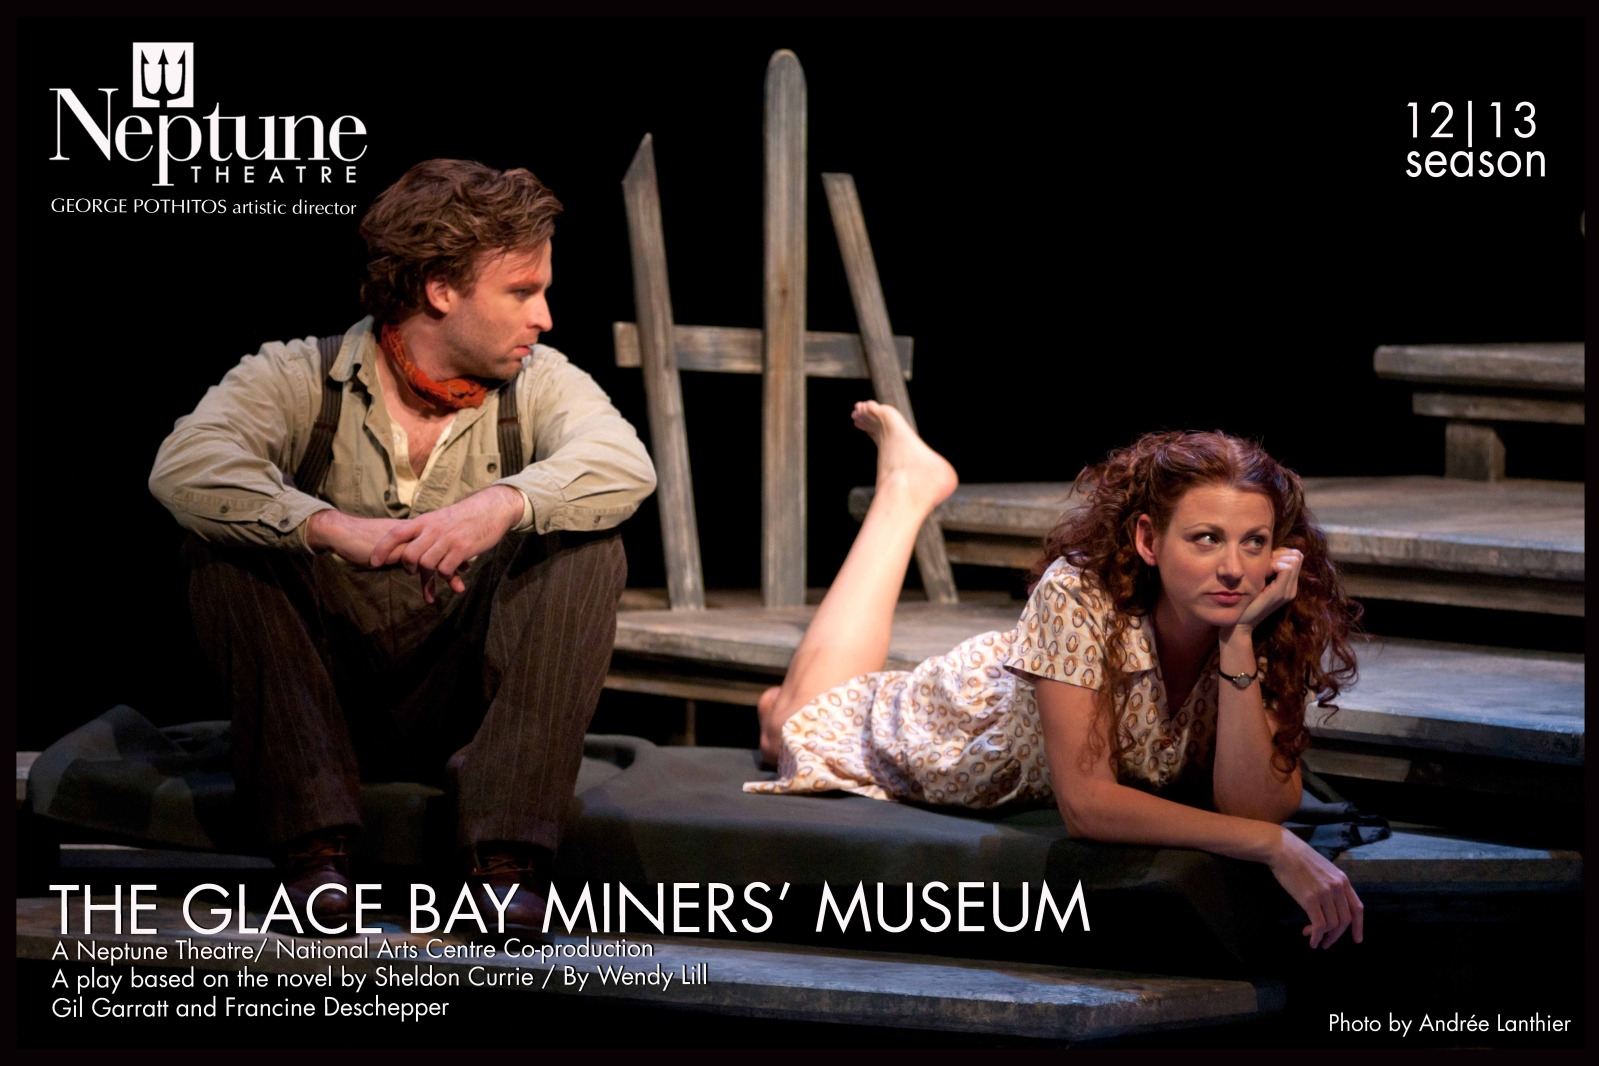 Neptune Theatre Presents: The Glace Bay Minors' Museum